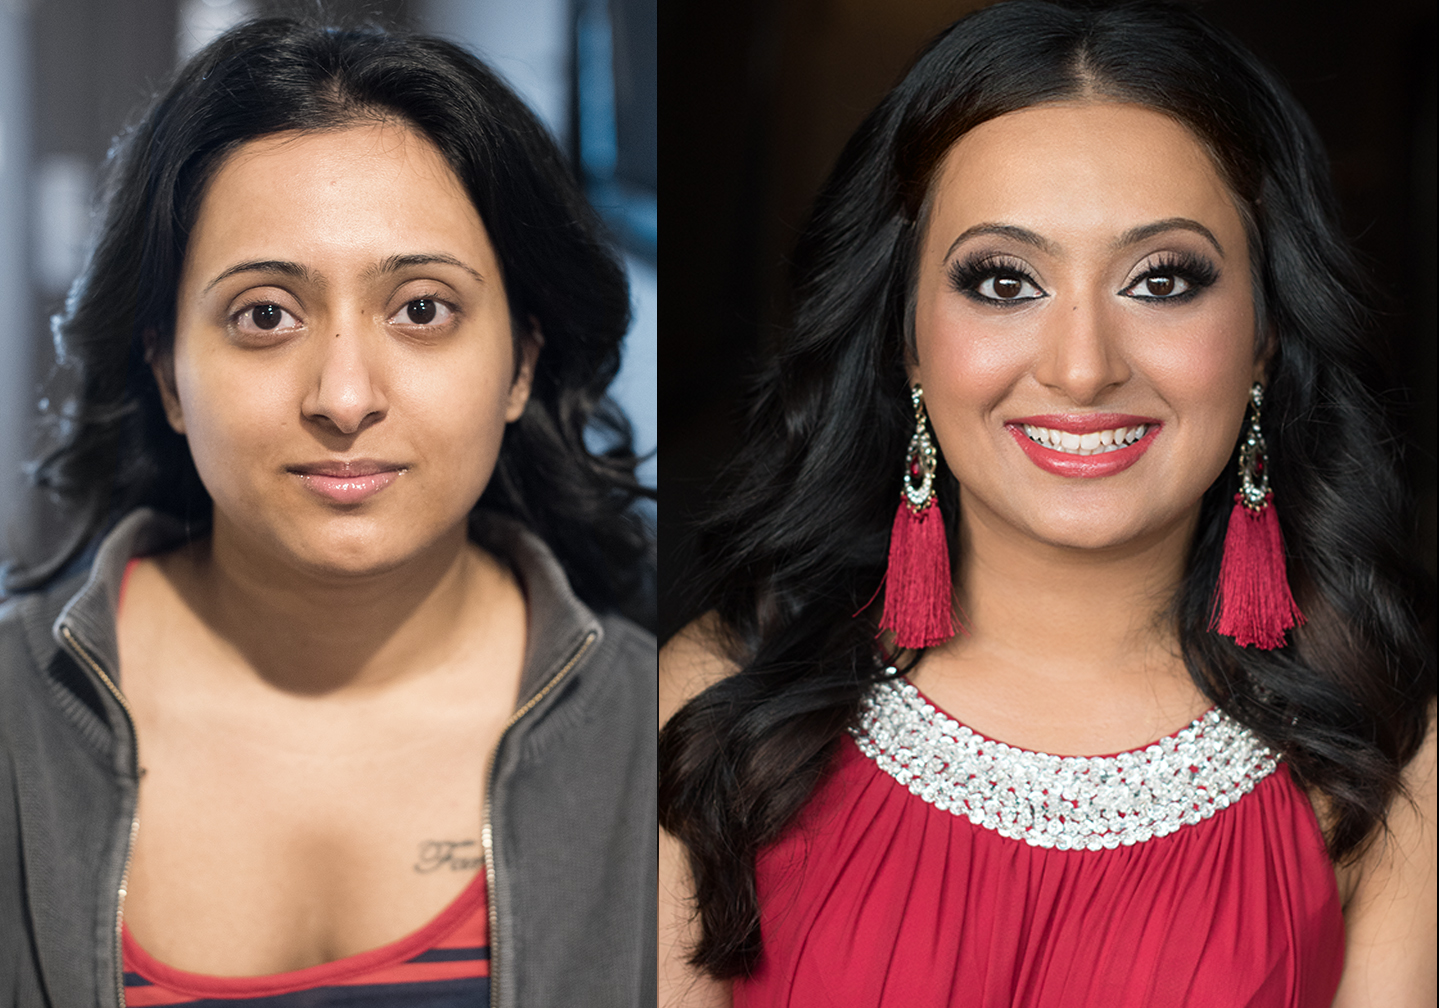 Natural airbrush makeup and hair indian bride south east easian beauty affair before after.jpg